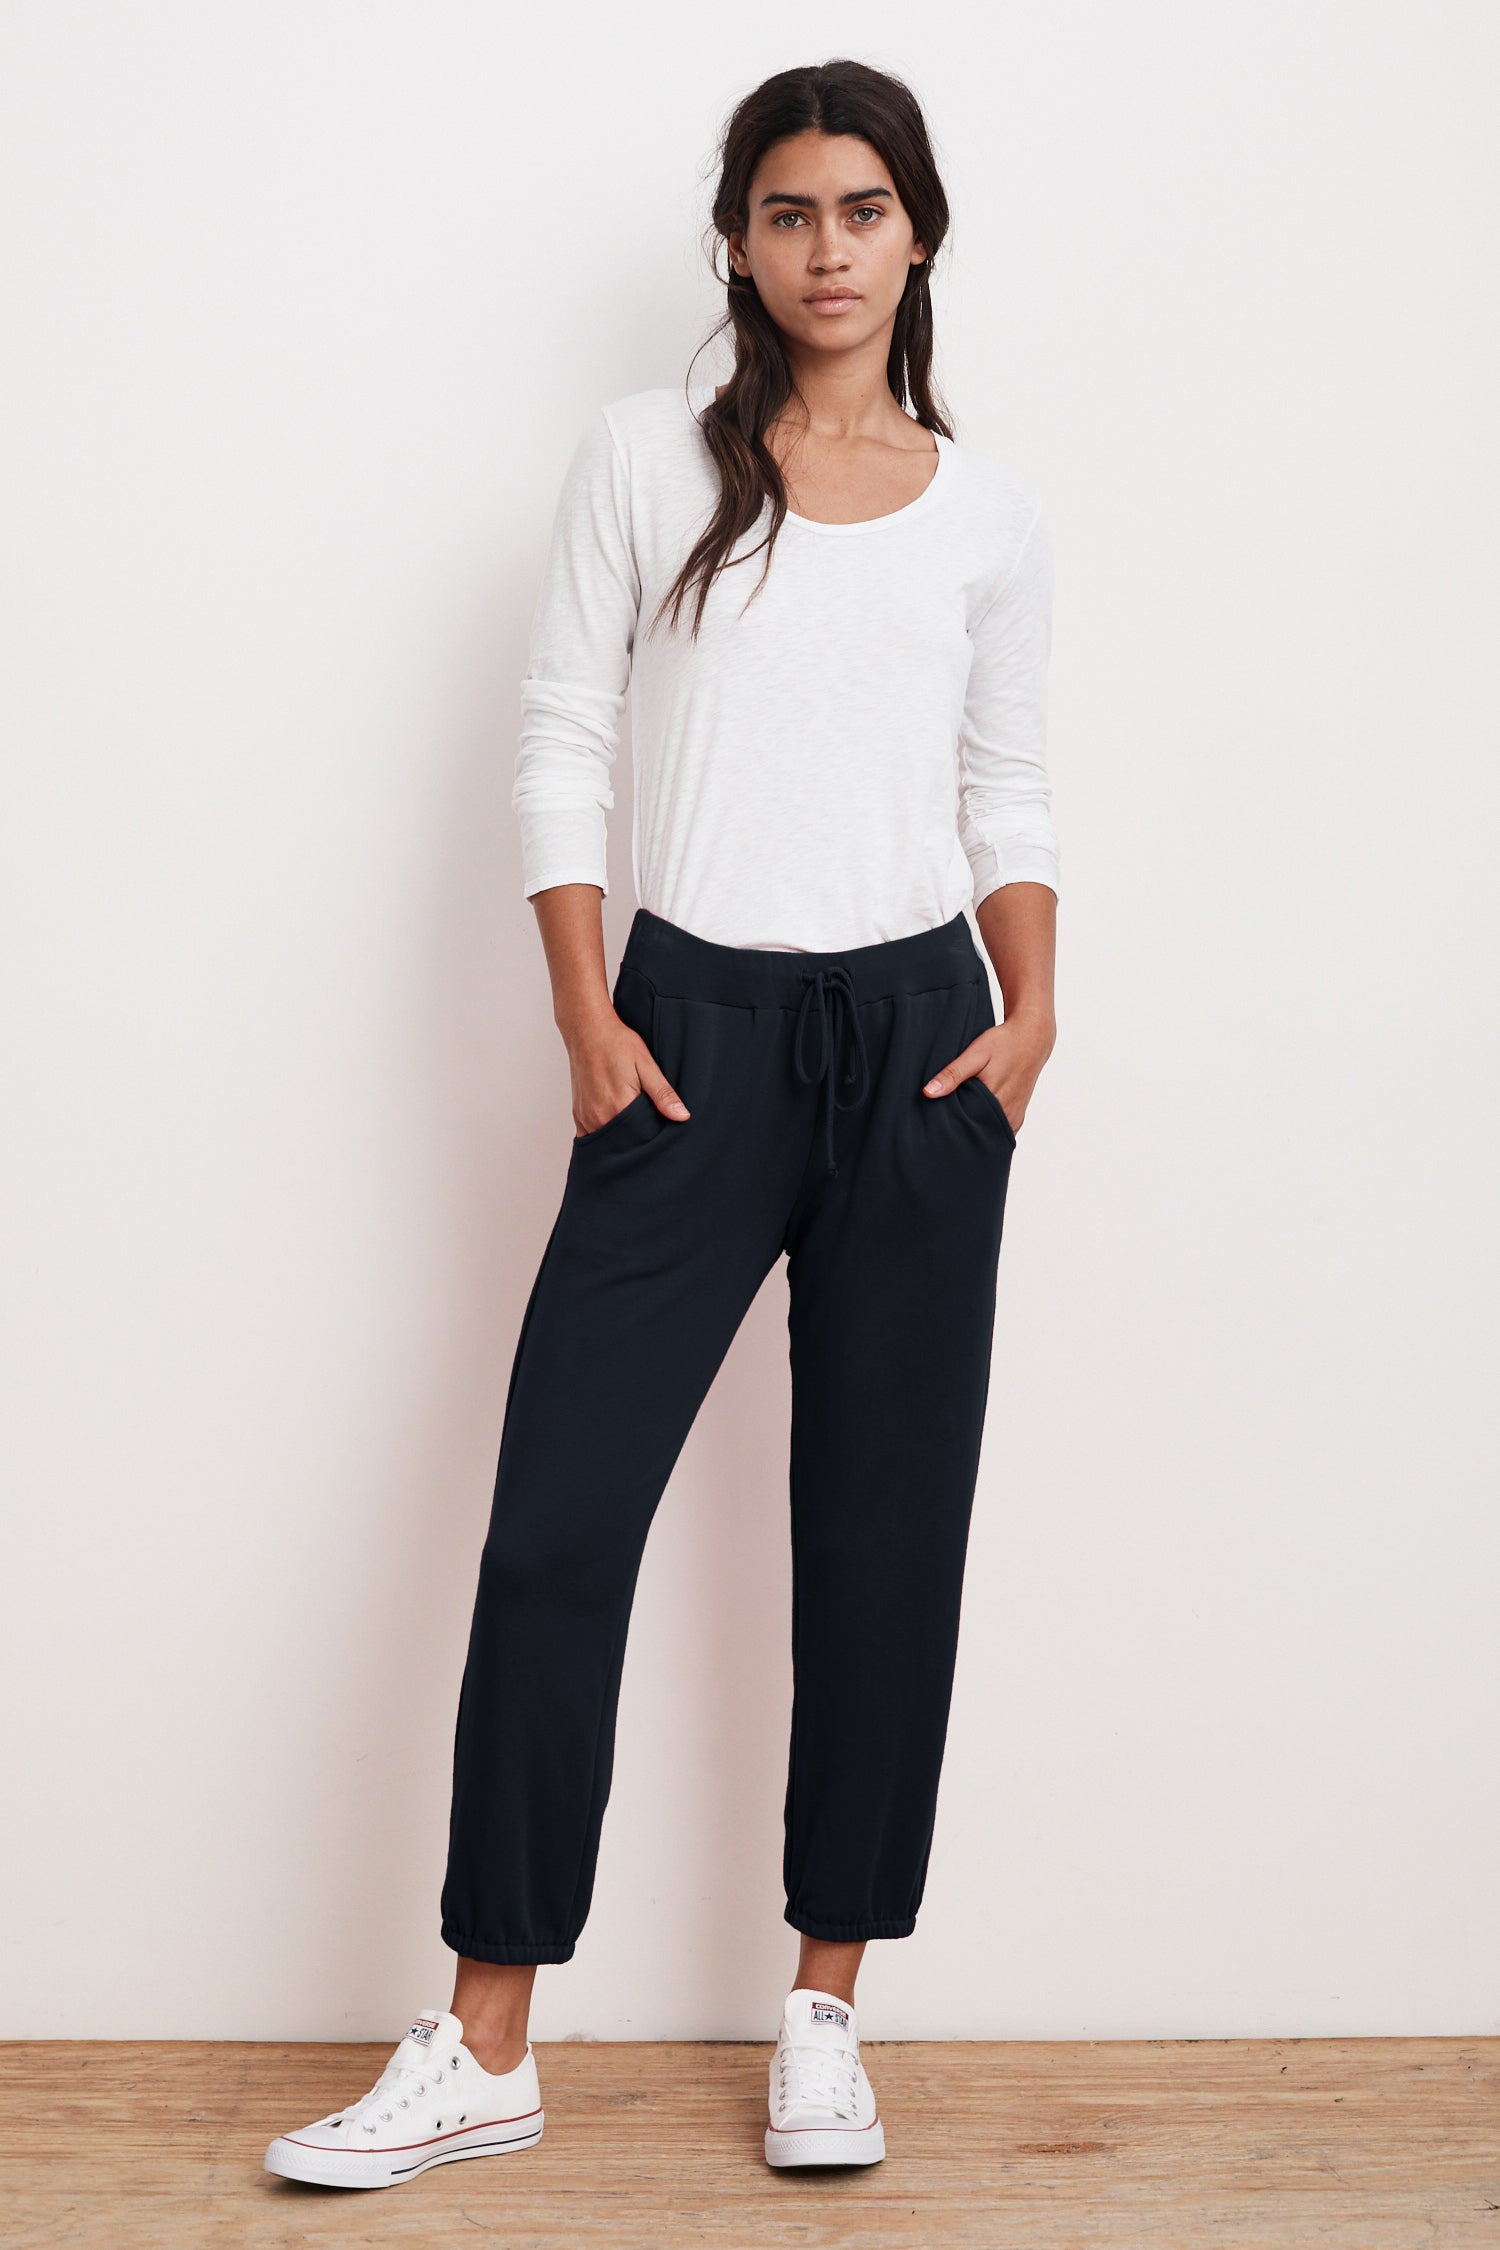 CHAVA LUXE FLEECE SWEATPANT IN NIGHT